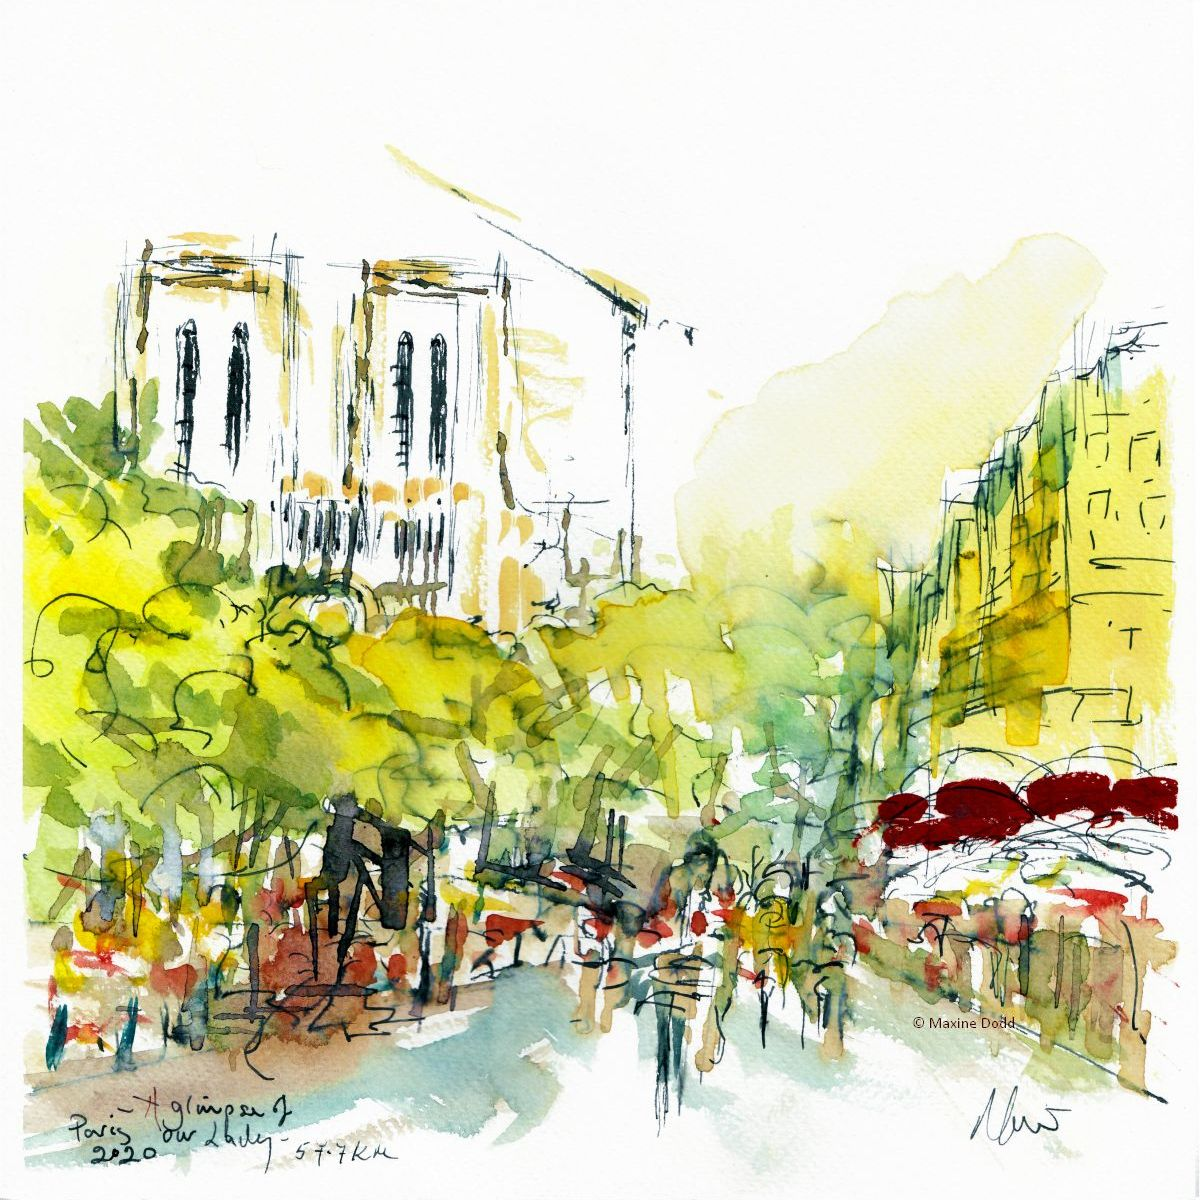 Stage 21 - Paris, A glimpse of Our Lady, watercolour, pen and ink by Maxine Dodd